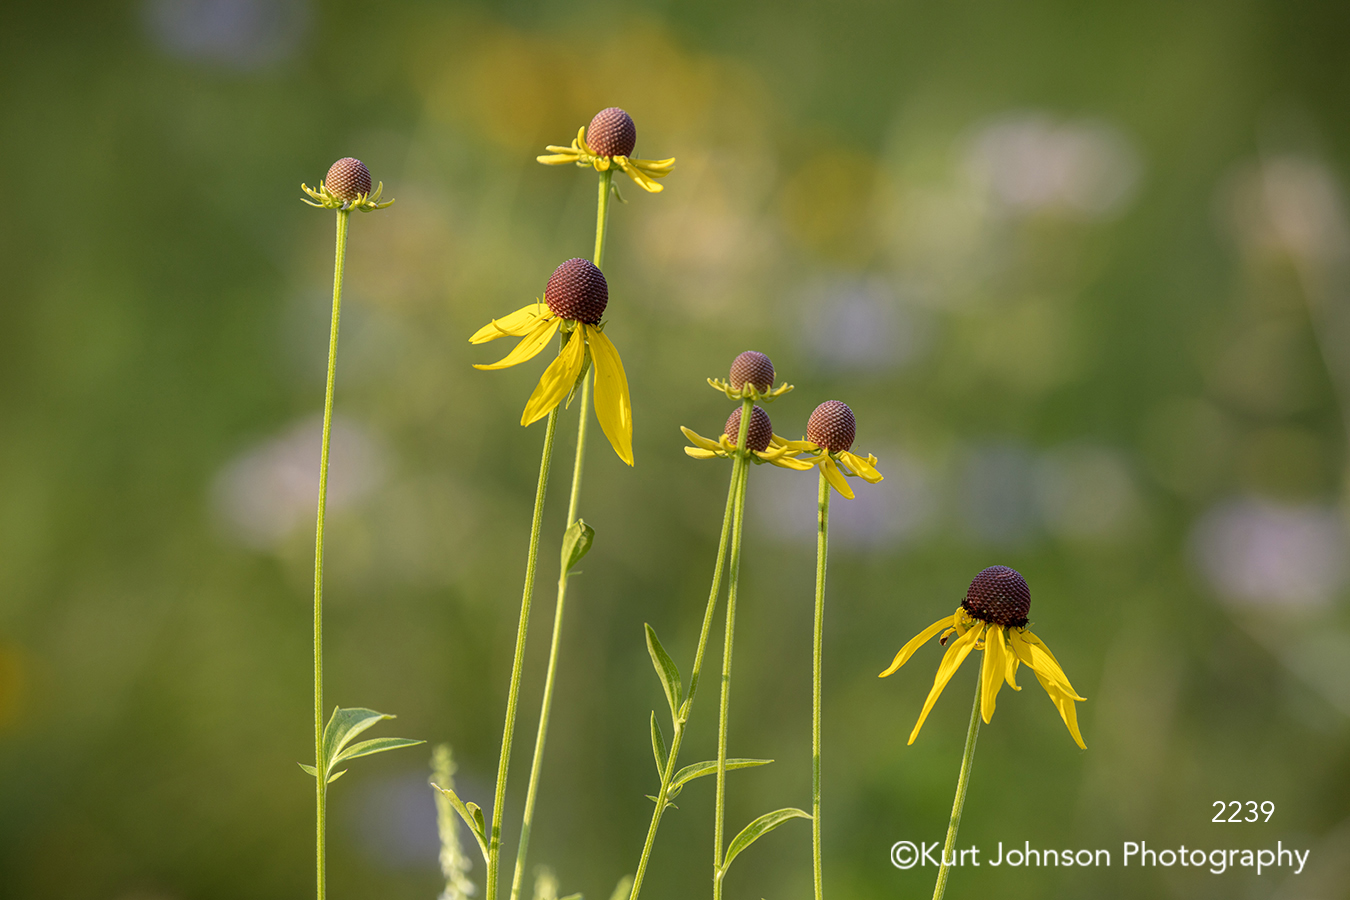 yellow flower flowers wildflower wildflowers field green grass grasses colorful bright happy close up detail macro